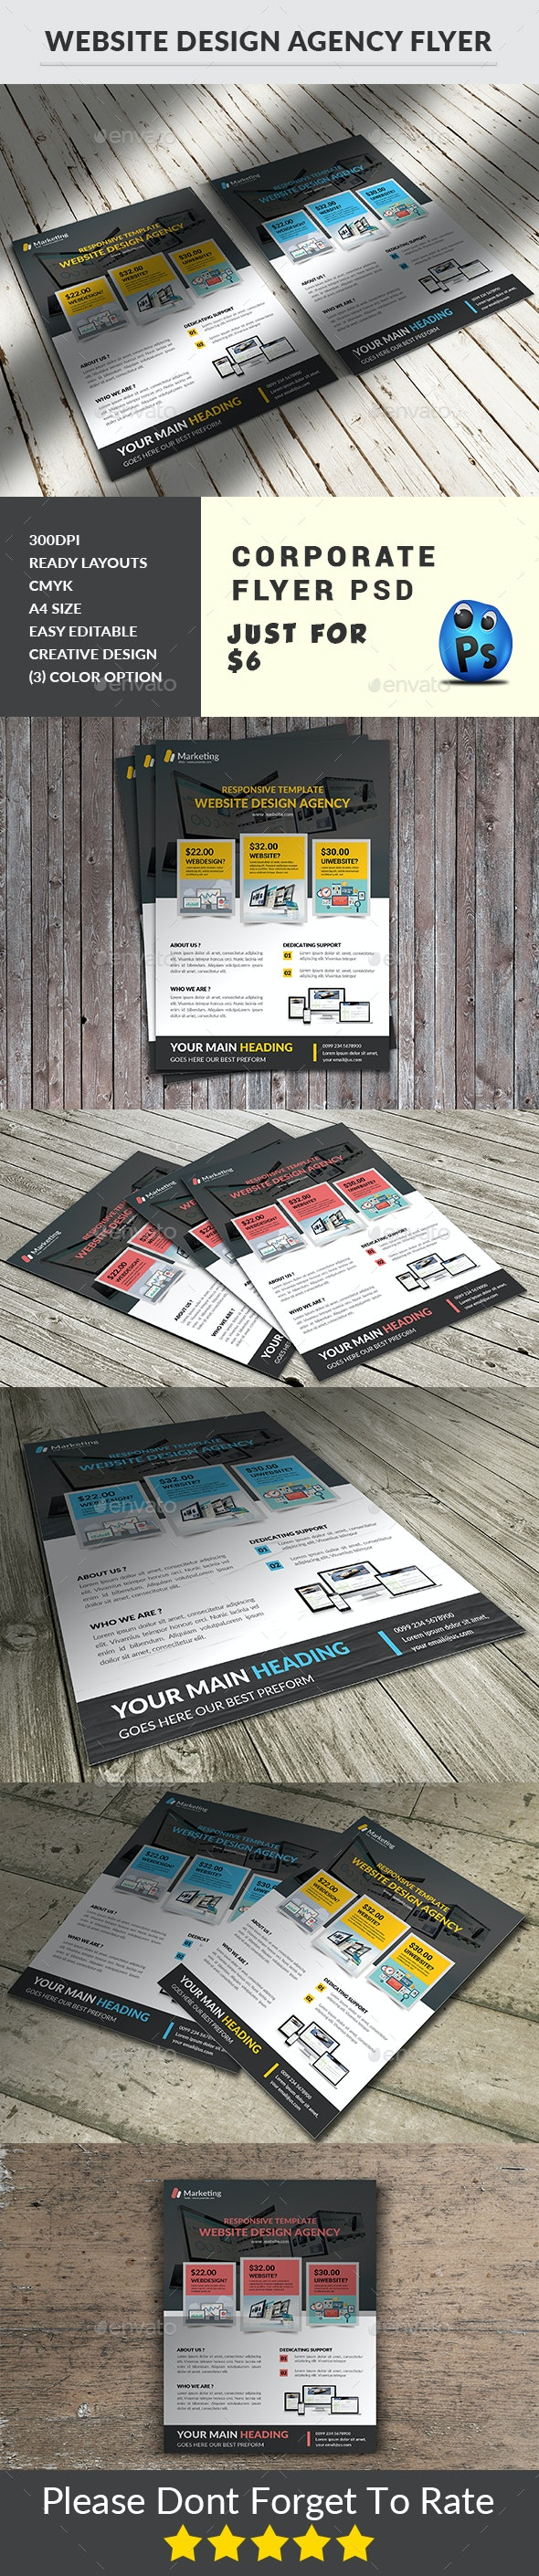 Website Design Agency Flyer - Corporate Flyers